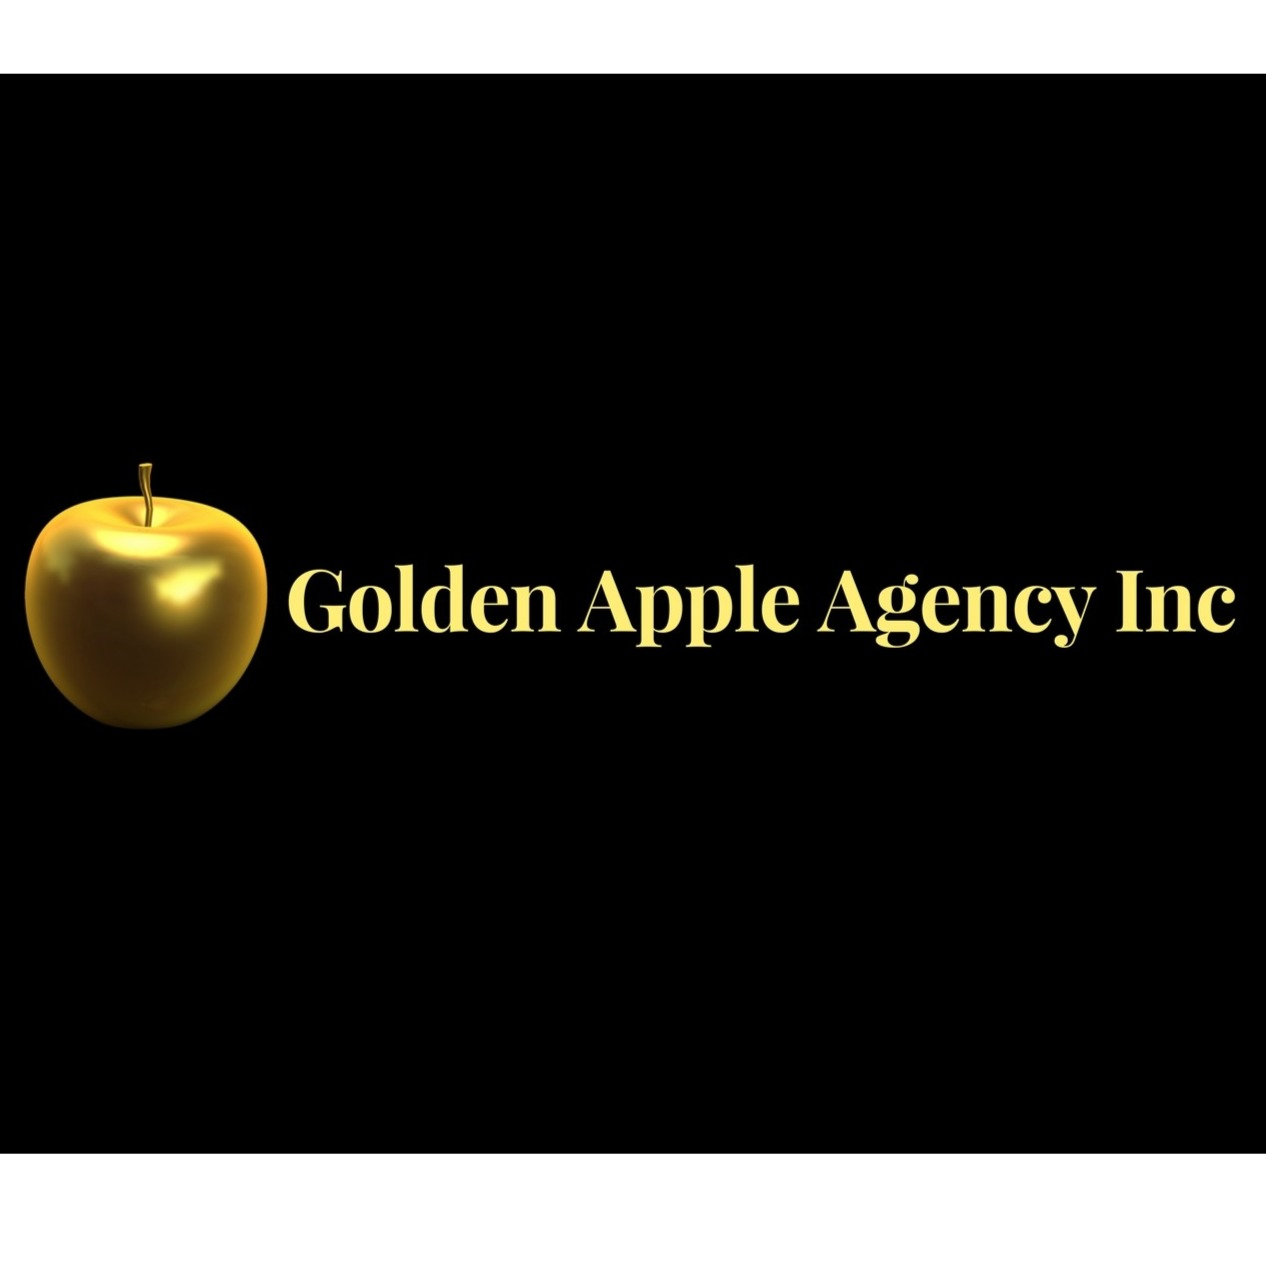 Golden Apple Agency Inc - Jacksonville, FL 32216 - (904)990-5050 | ShowMeLocal.com